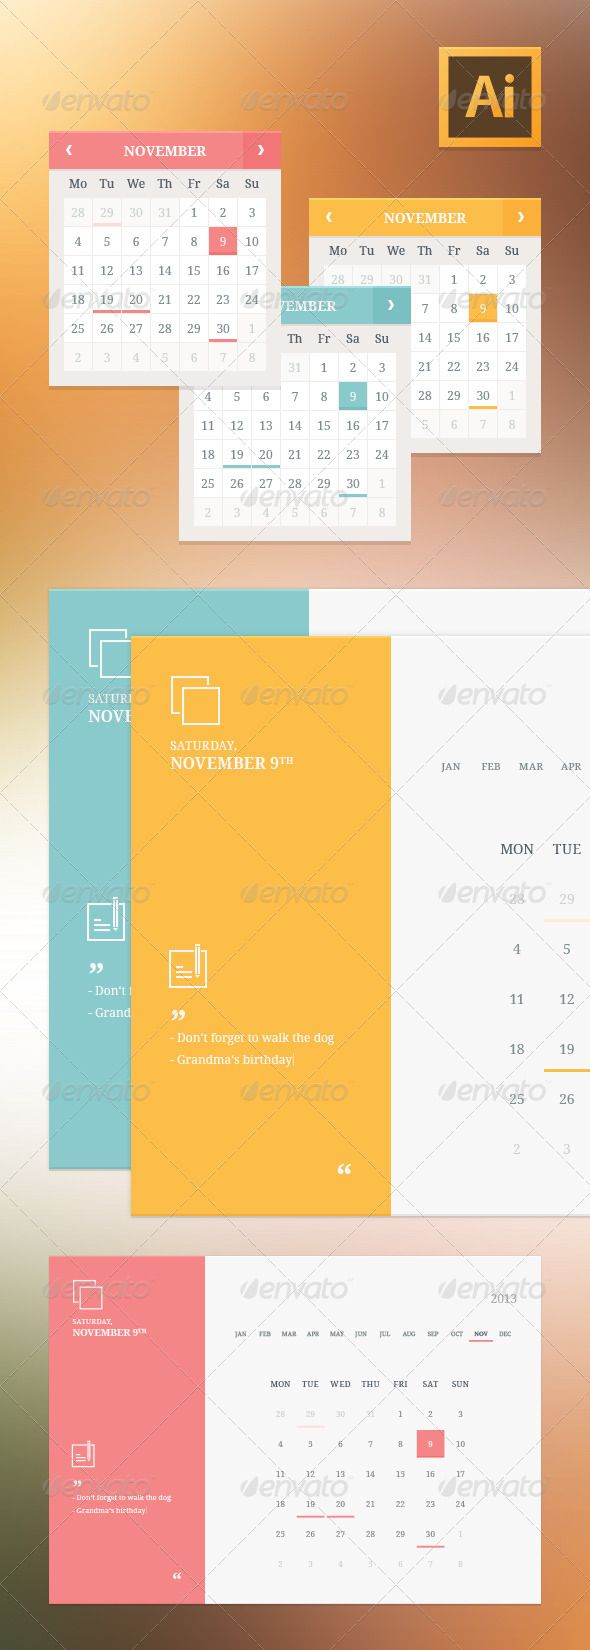 Flat Style Calendar Widgets  #GraphicRiver         Flat user interface vector set for website development and mobile application design with minimal icons, buttons, control elements and forms in modern fresh design style.